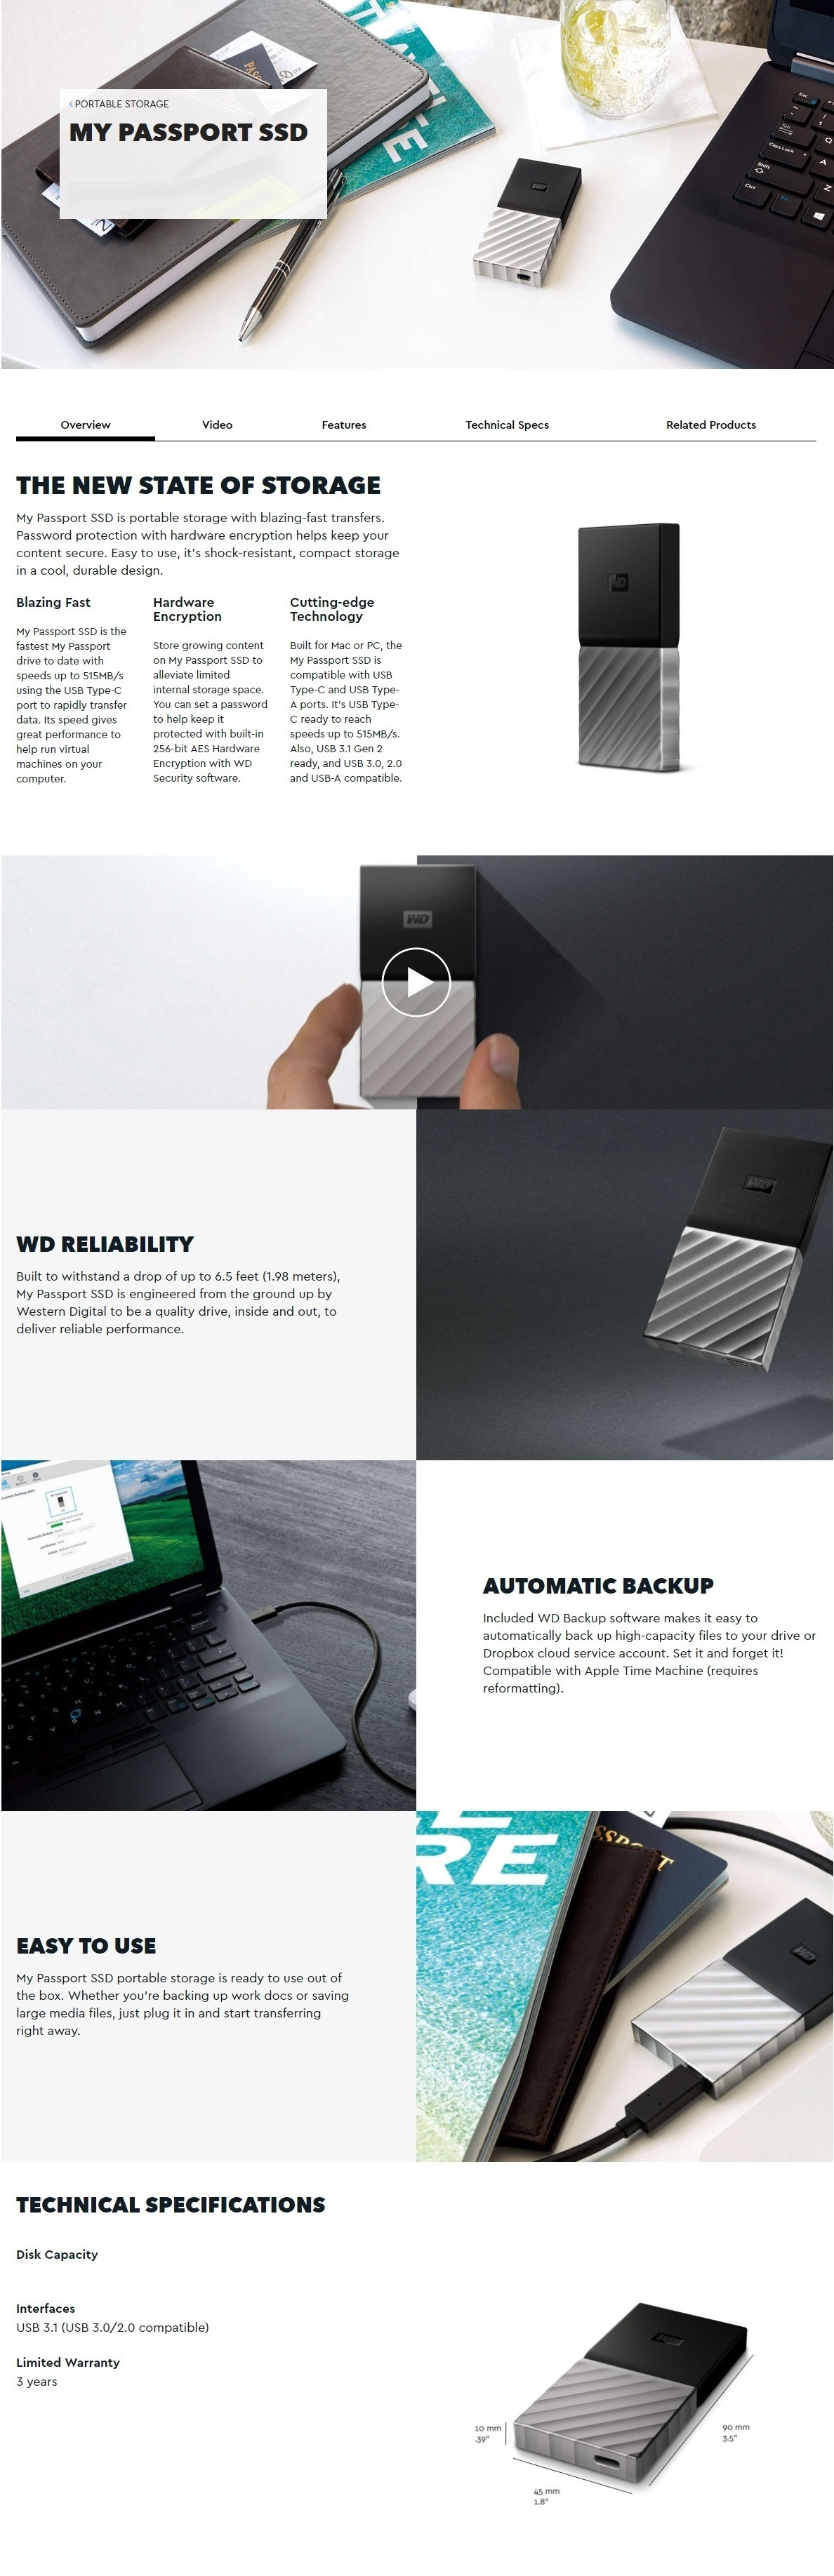 Hard Drives Ssds Wd My Passport 256gb Ssd Type C Portable Drive Hardisk Pasport External Password Protection With Hardware Encryption Helps Keep Your Content Secure Easy To Use The Is Shock Resistant Compact Storage In A Cool